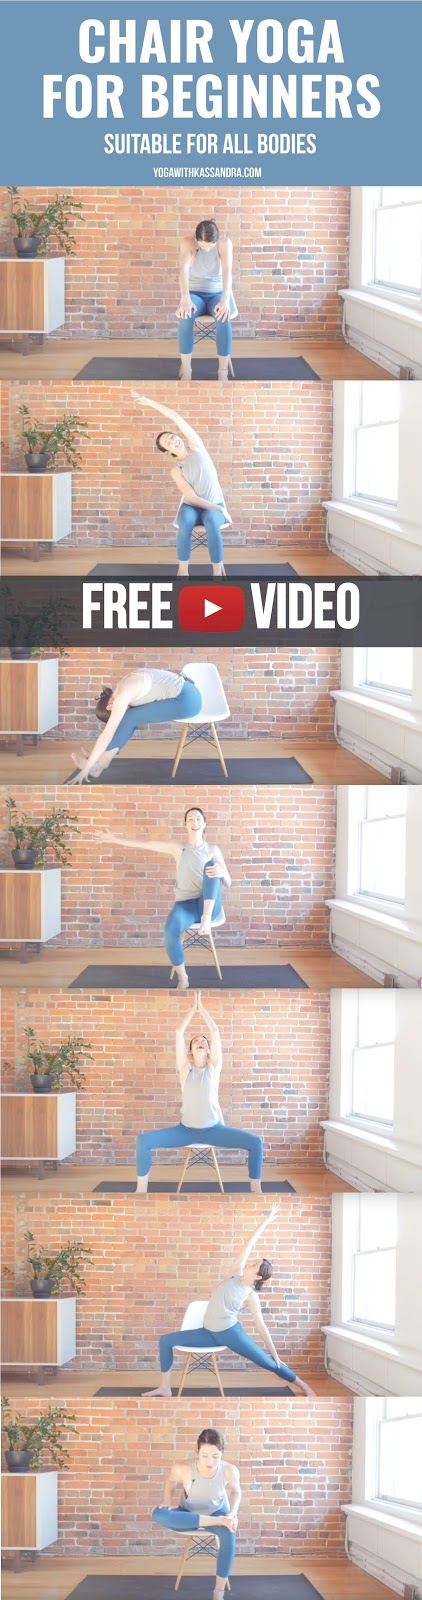 Whether you have a limited range of motion, are recovering from an injury, or want to mix up your practice - Chair yoga is a great option for everybody!